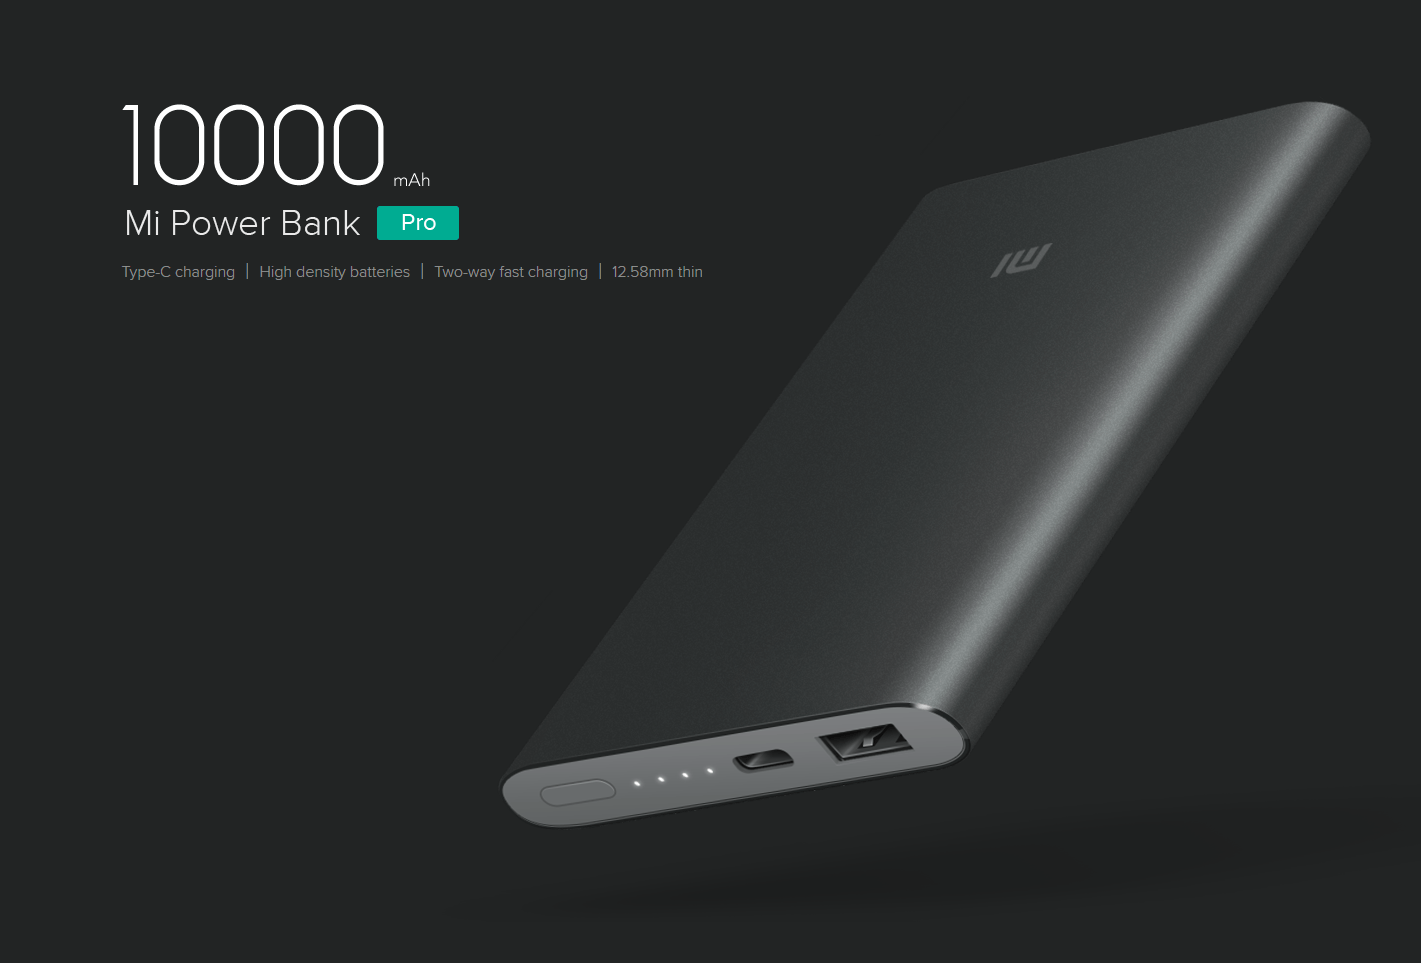 Xiaomi 10000mah Mi Power Bank Pro